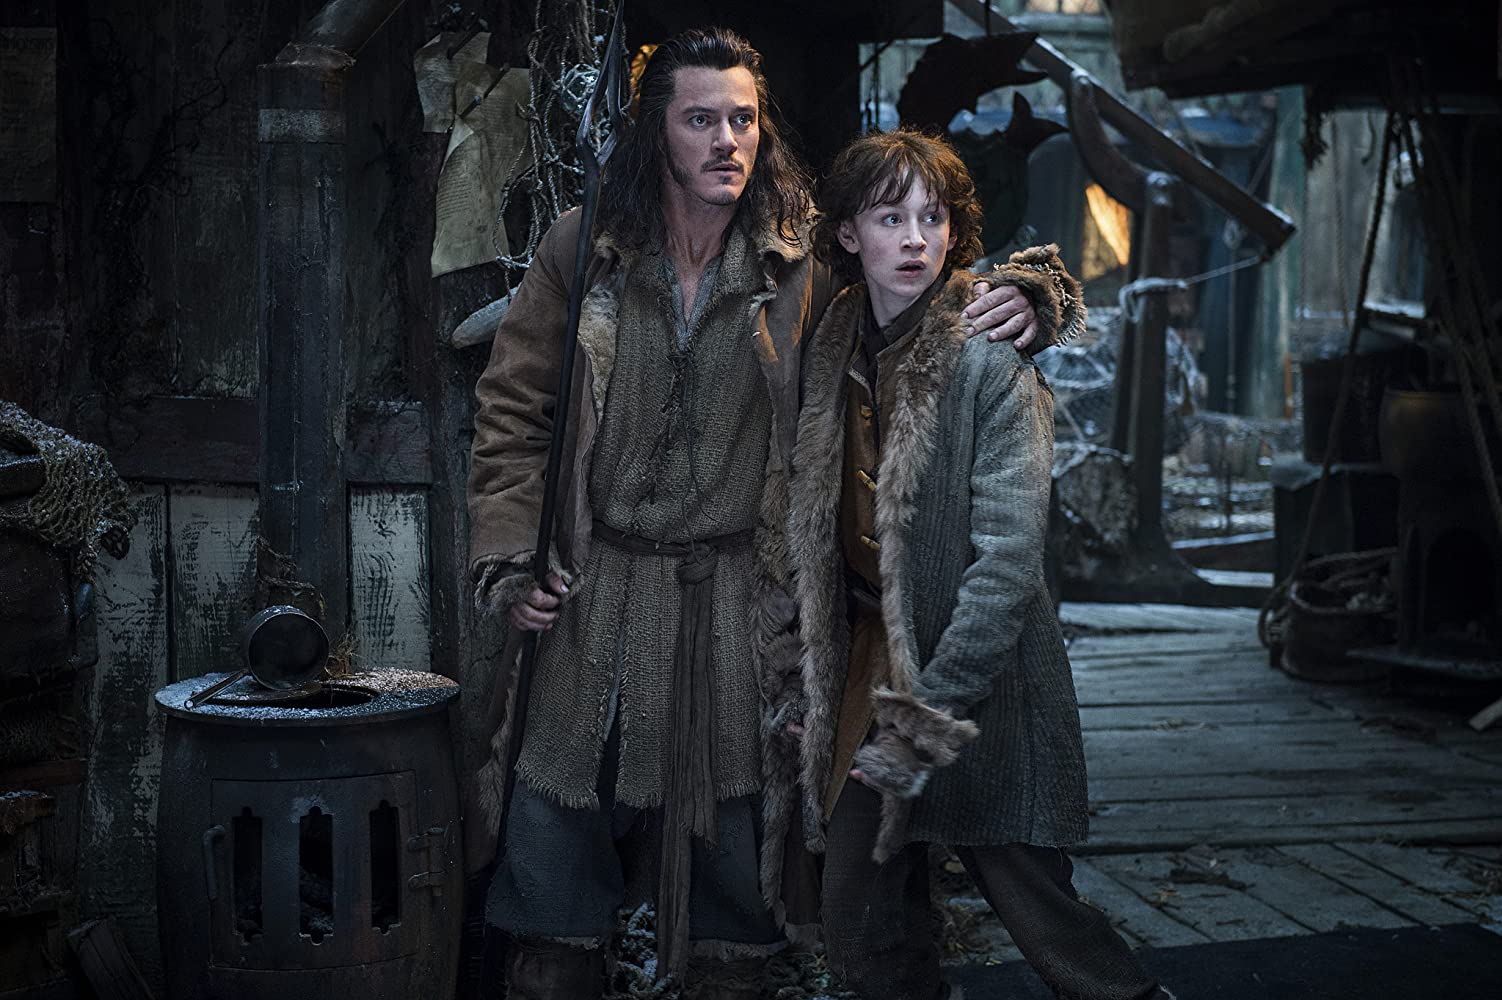 Luke Evans and John Bell in The Hobbit: The Desolation of Smaug (2013)